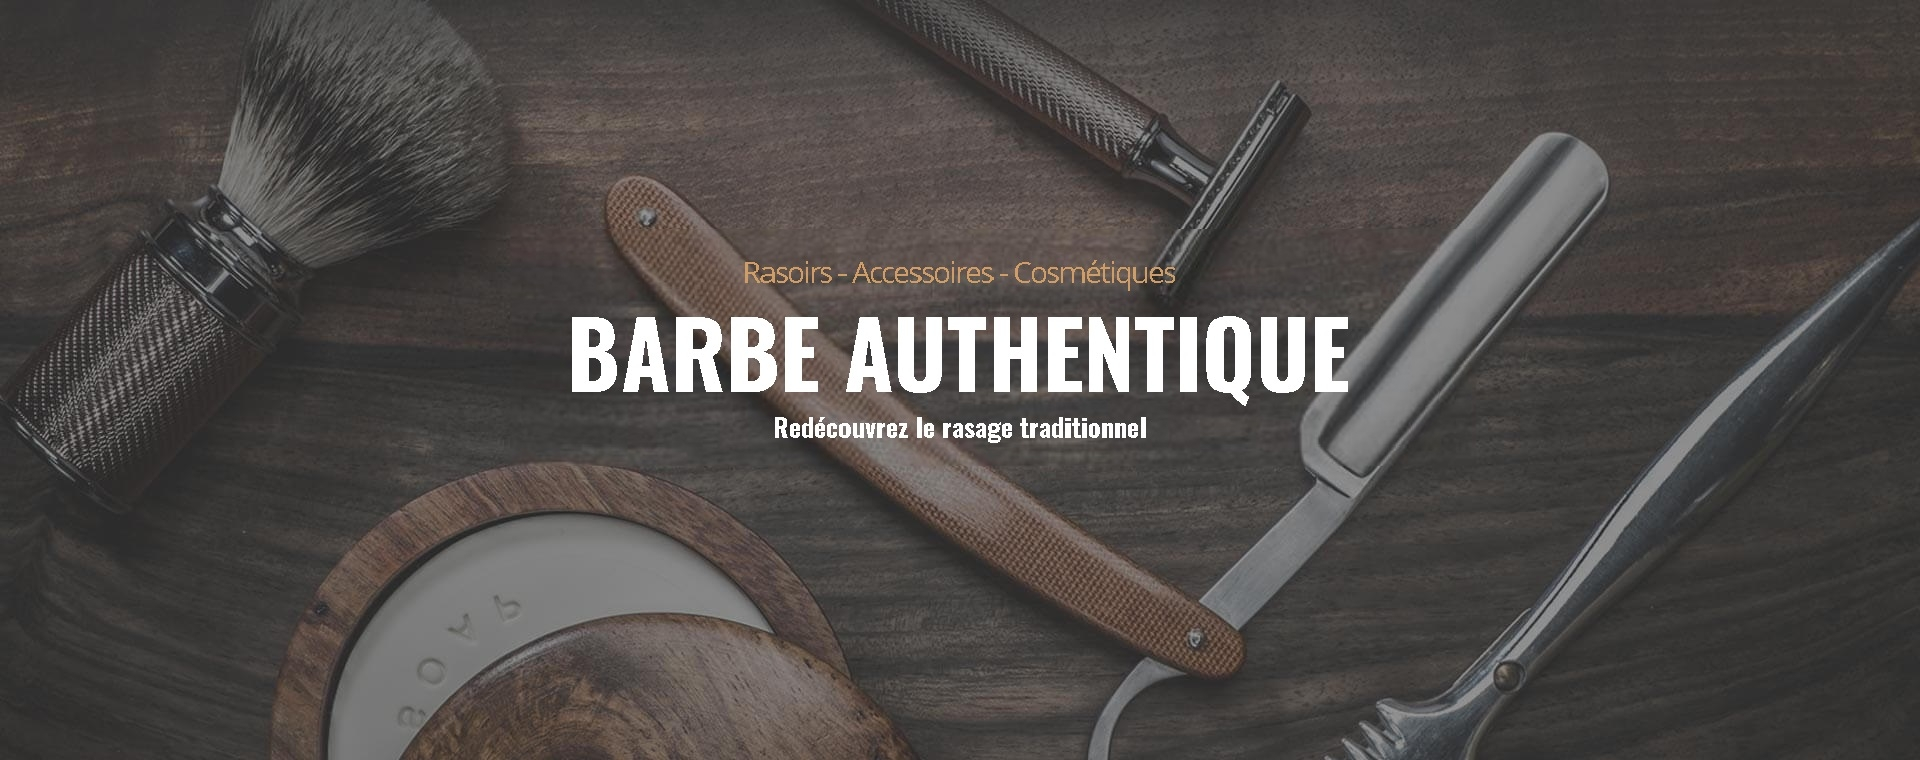 Barbe Authentique (@rasoir-coupe-choux) Cover Image